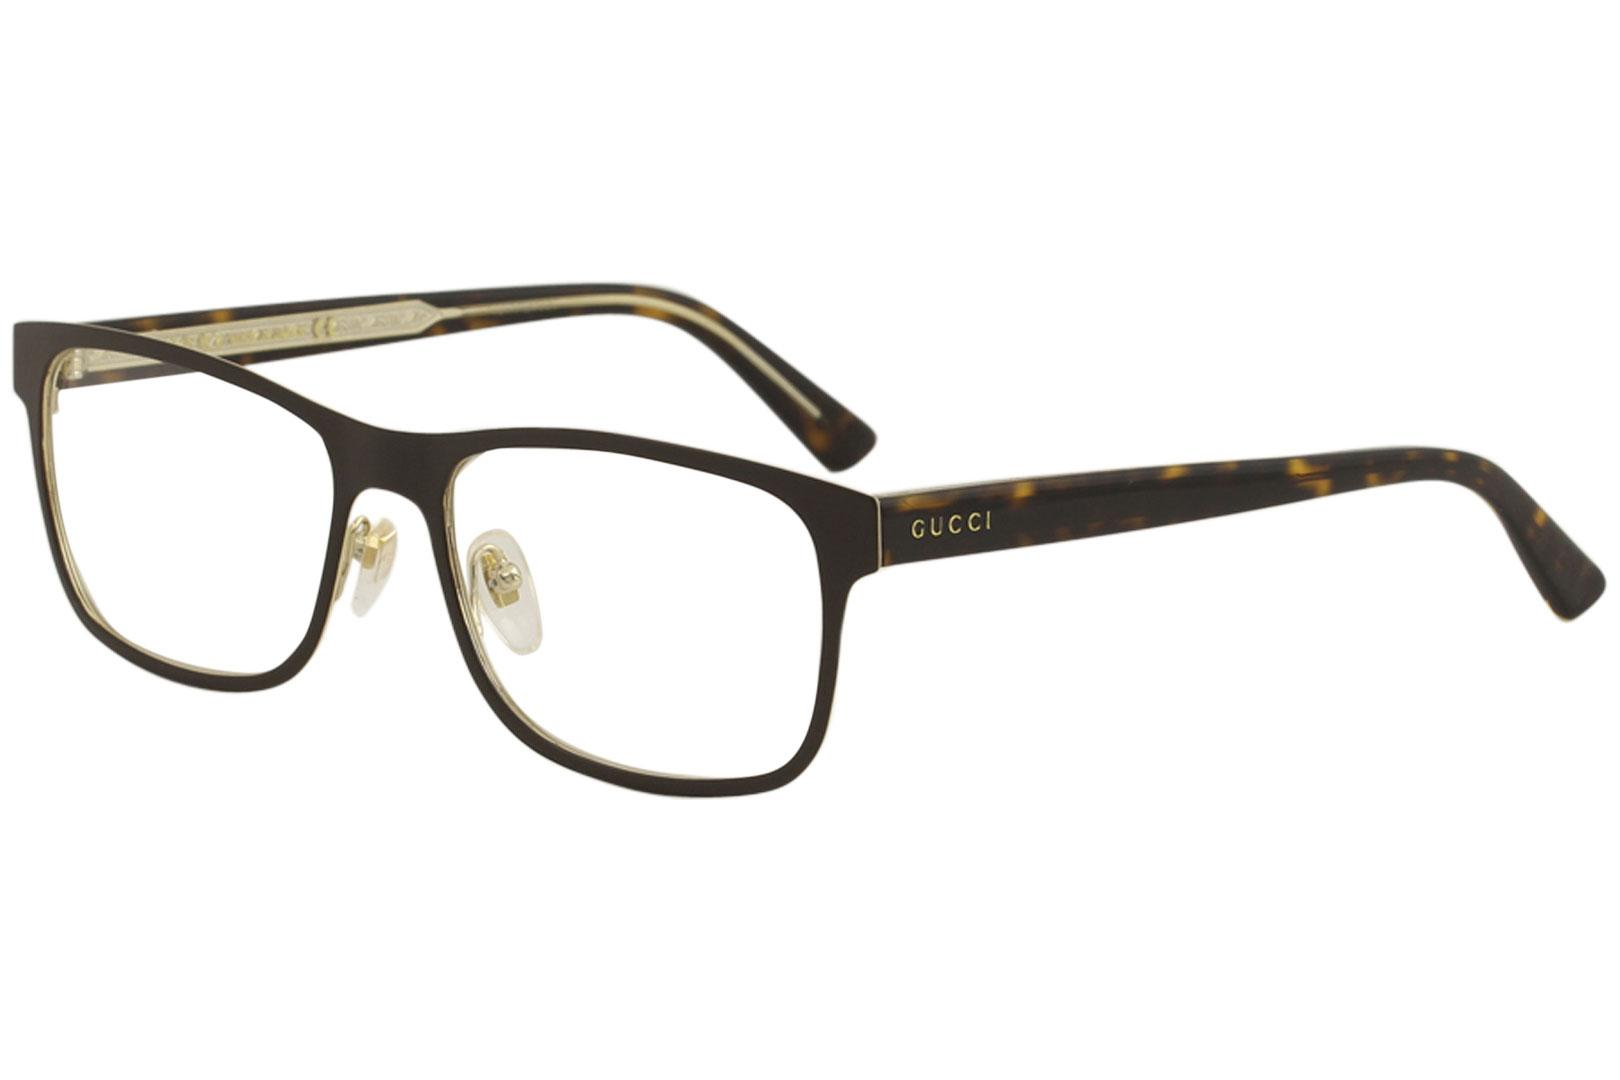 8677c7d0cdae Gucci Women s Eyeglasses GG0317O GG 0317 O Full Rim Optical Frame